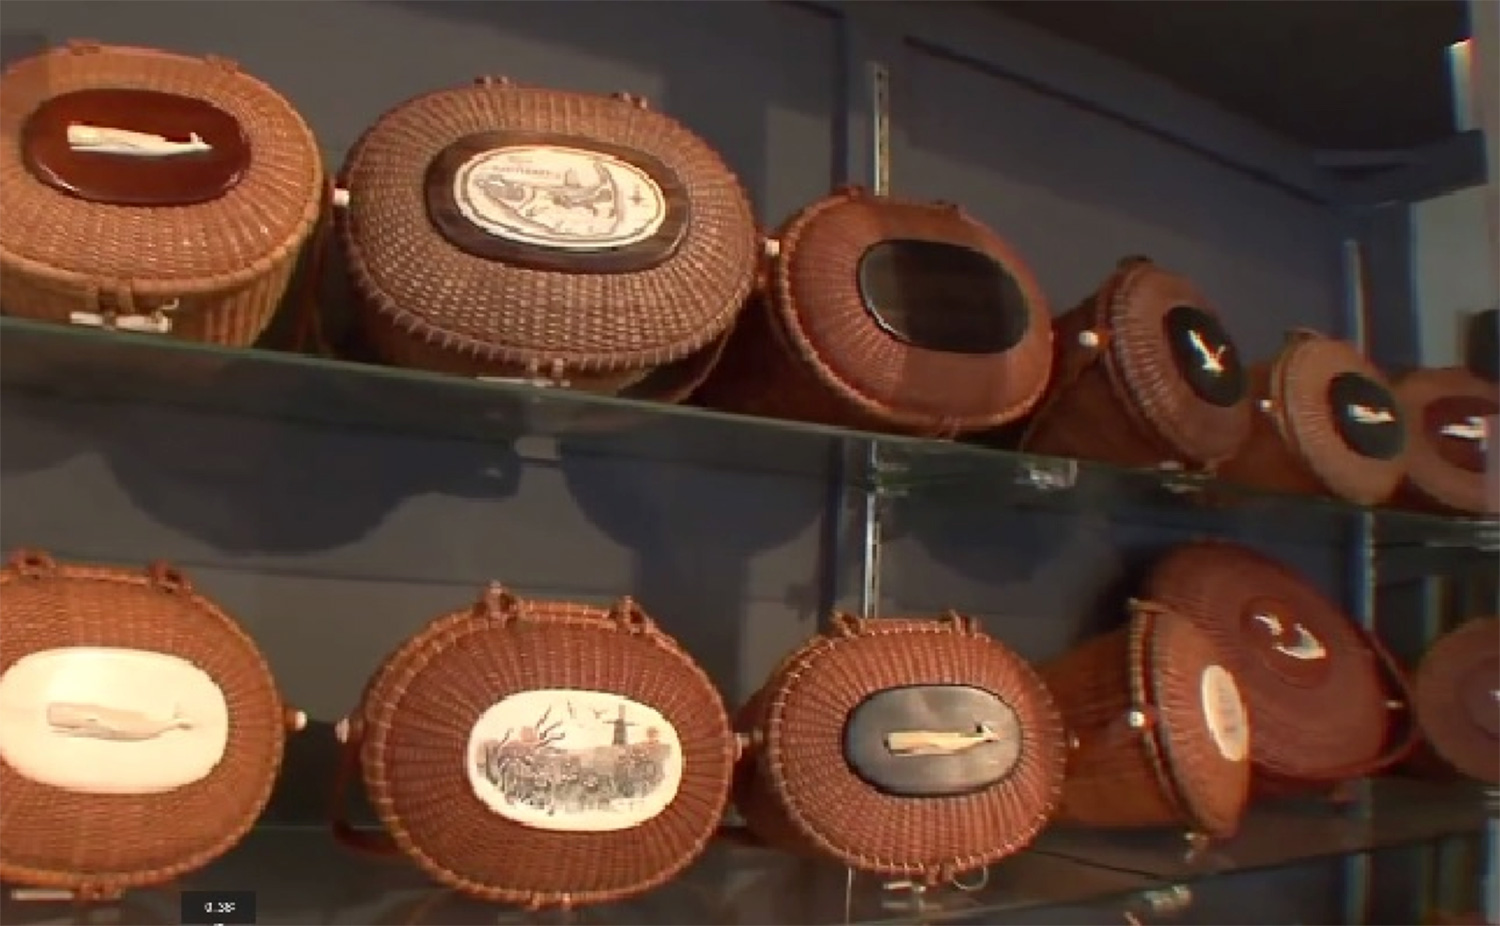 """A selection of authentic and """"in-the-style-of-Jose Reyes"""" baskets at a Nantucket Antiques store. The look is not patented, but Reyes and other basket makers sign or apply labels on their creations. (Photo is a YouTube screen grab from Sylvia Antiques website)"""